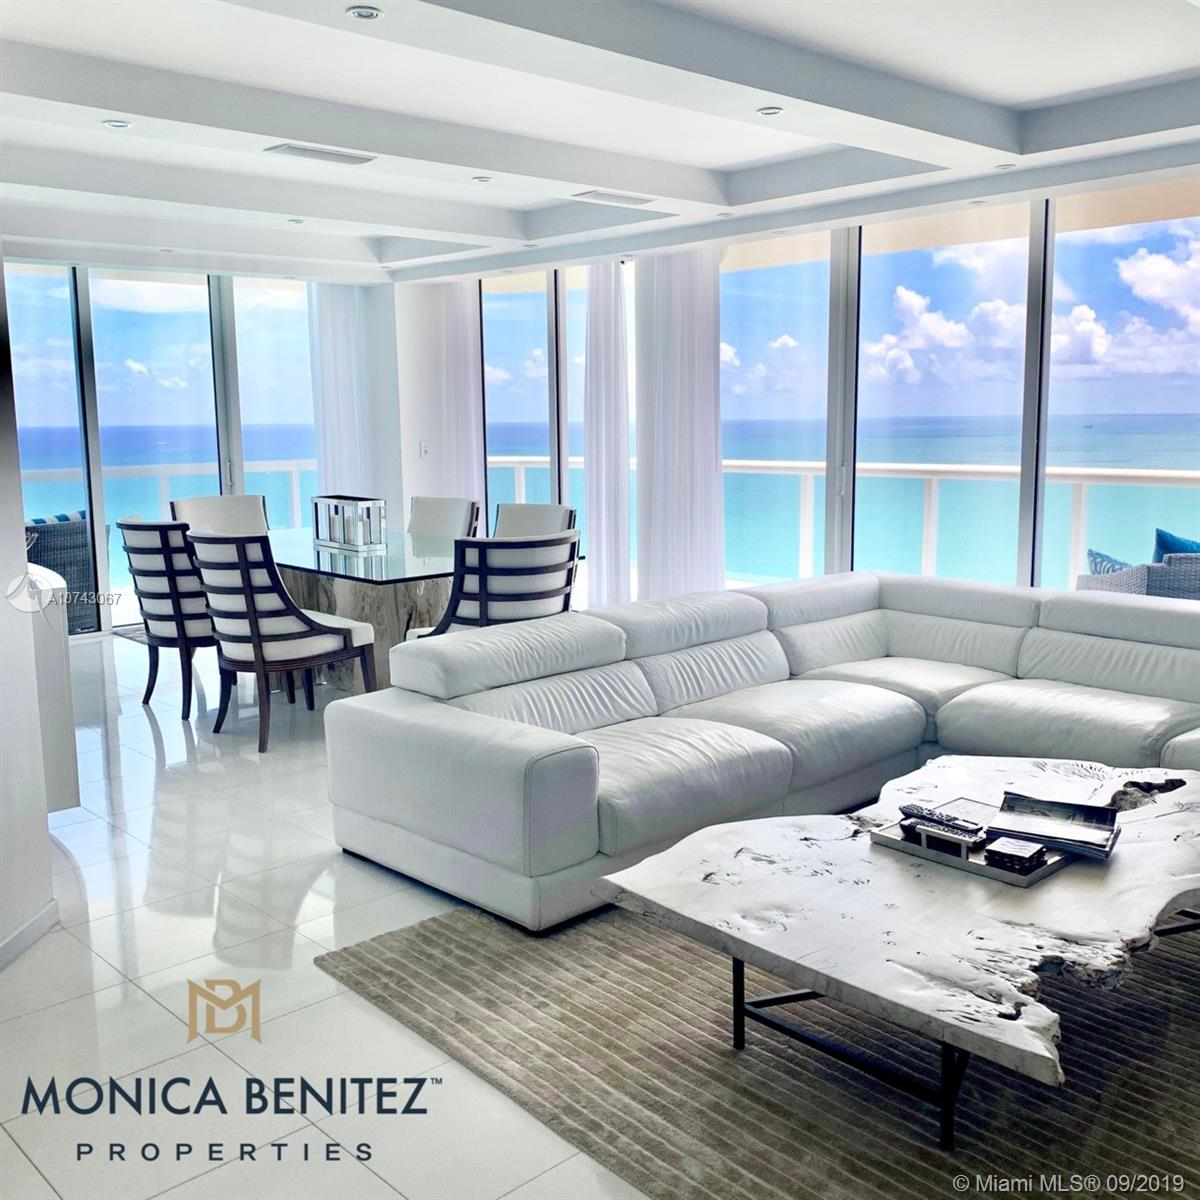 """CONDO IN THE CLOUDS"" located in the highly sought after AKOYA Luxury Condo in Miami Beach 38 floors high into the clouds. Ocean front WRAP AROUND BALCONY with PANORAMIC views overlooking beautiful MIAMI BEACH crystal blue waters. Fully furnished by AWARD WINNING designs of ARTEFACTO. Over 1700 sqft of pure luxury, THASSO marble floors. Every room has absolutely spectacular oceanfront views. Originally a 3 bed 2.5 bath converted into 2 full master bedrooms with 2 full bathrooms and a half bath, 2 parking spaces conveniently located next to building entry door. Fingerprint building access. Amenities include, sauna, racquetball, tennis, golf, 24hr concierge, pool, direct beach access, BBQ and much more. This is a luxurious dream vacation home in the clouds. *RATES MAY VARY* Seasonal Rental."